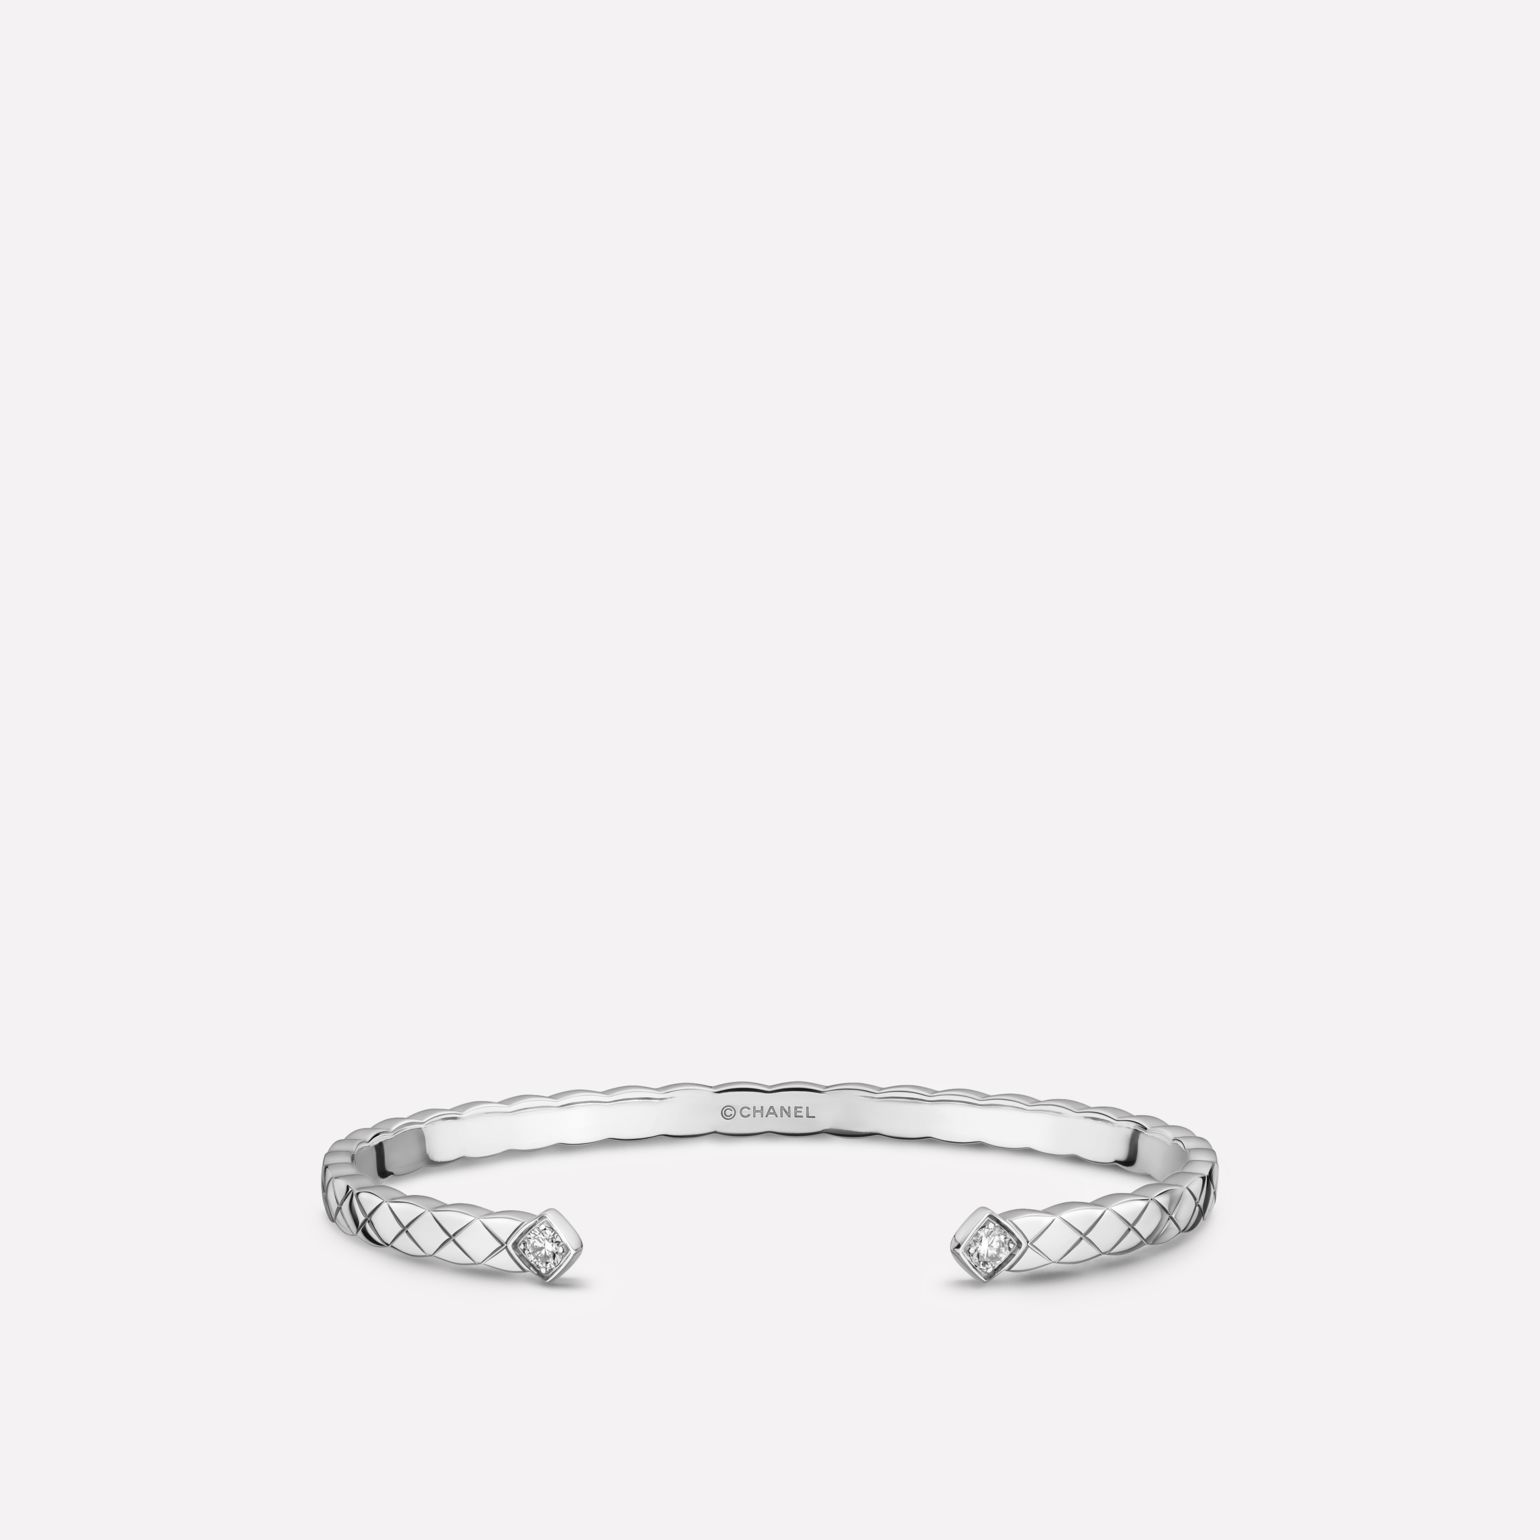 Coco Crush bracelet Quilted motif, 18K white gold, diamonds